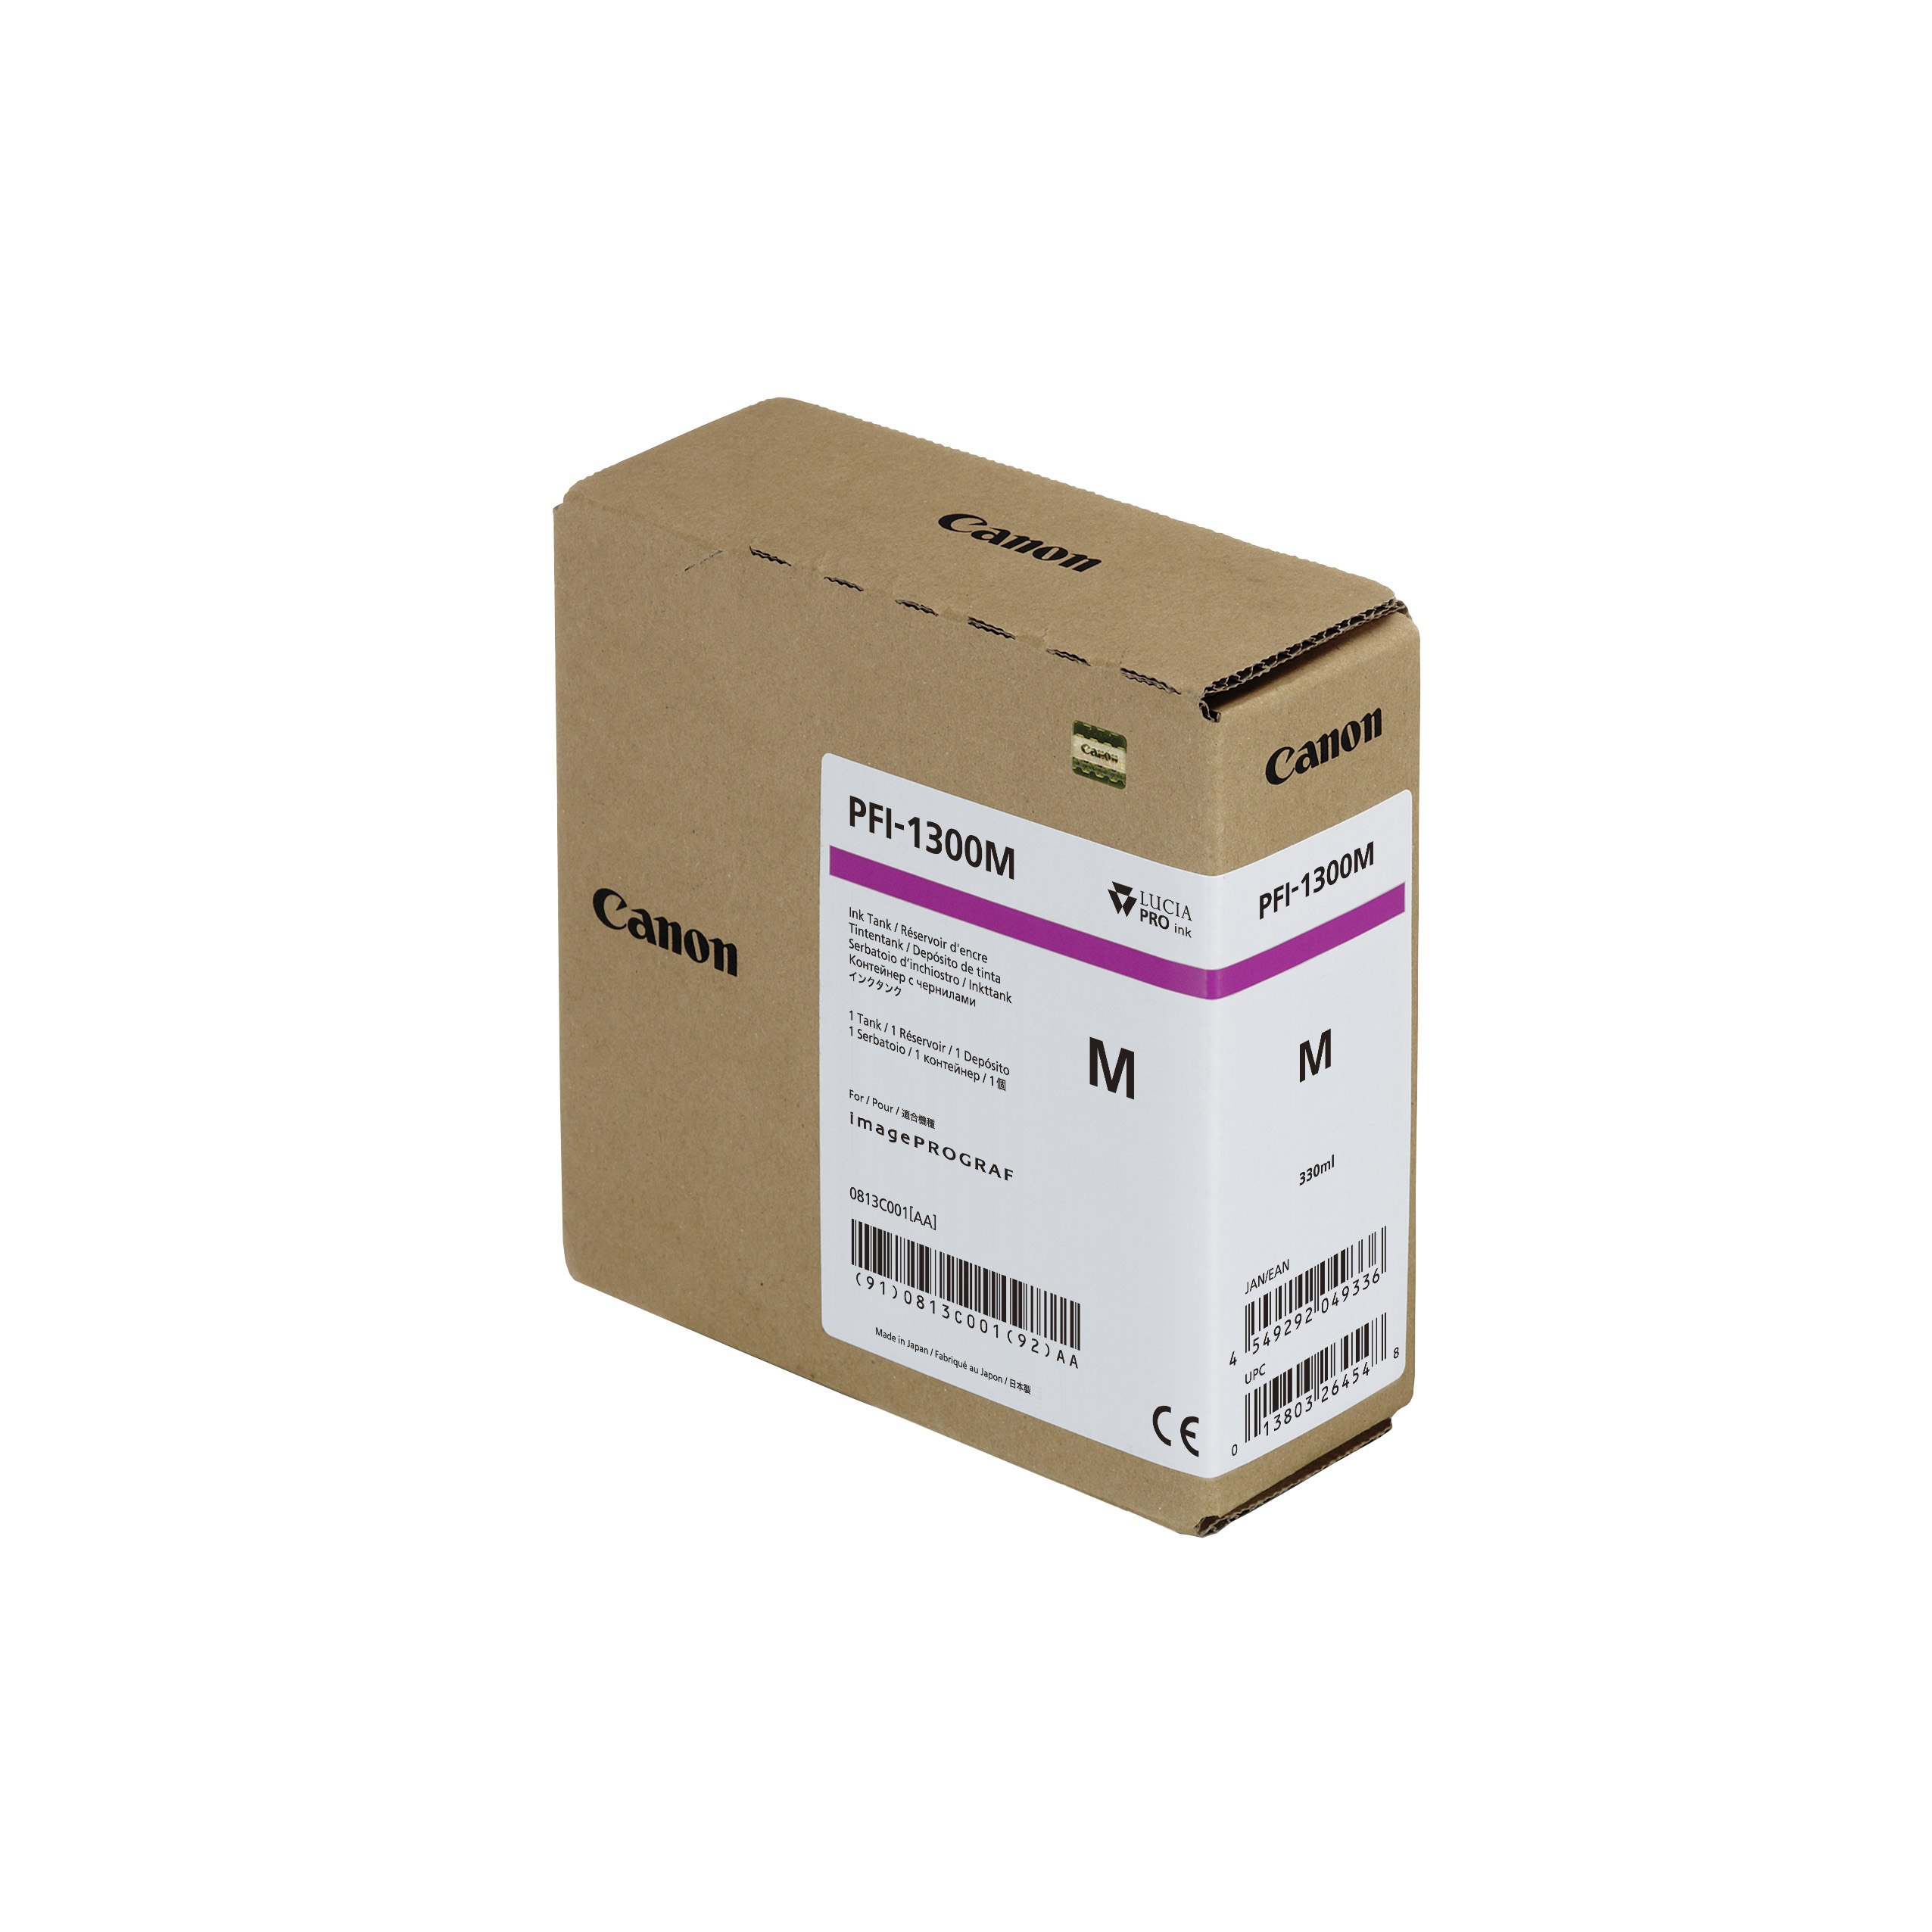 Canon PFI-1300M Magenta Ink Tank - 3300ml Cartridge - for Canon PRO-2000, PRO-4000, PRO-4000S & PRO-6000S Printer - 0813C001AA - next day delivery from GDS Graphic Design Supplies Ltd